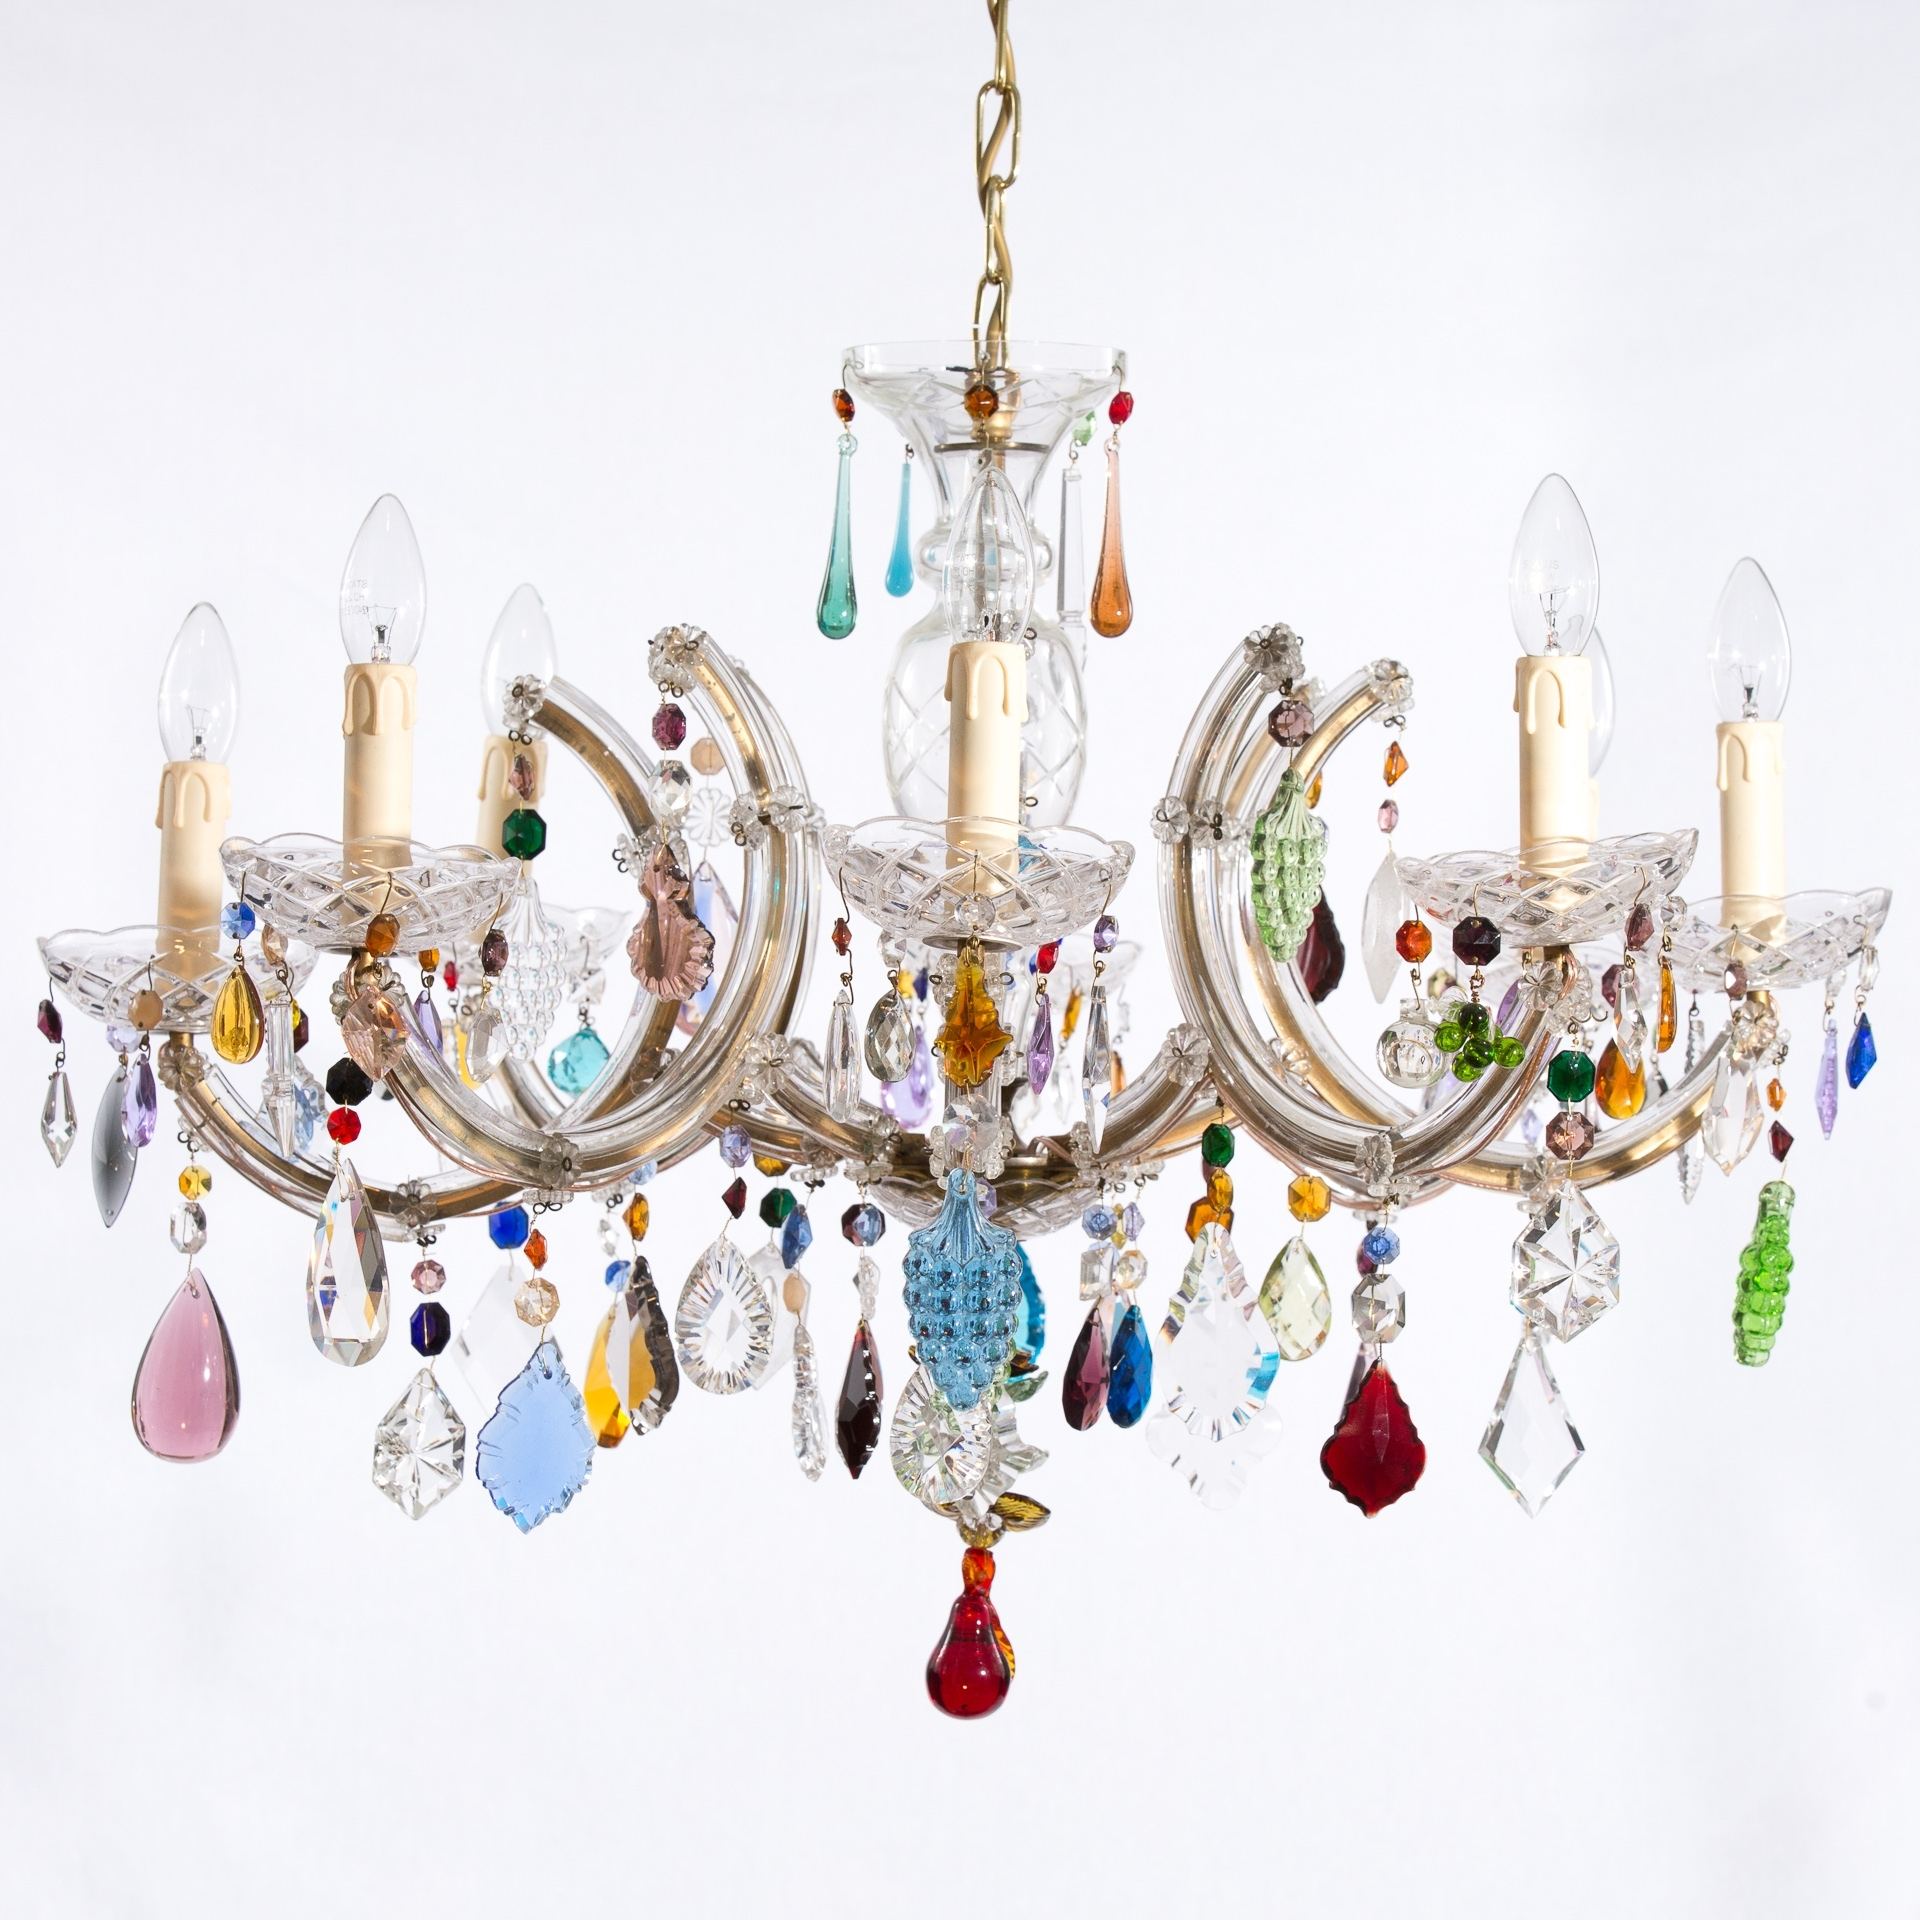 Honeybee Interiors Regarding Colourful Chandeliers (View 9 of 15)